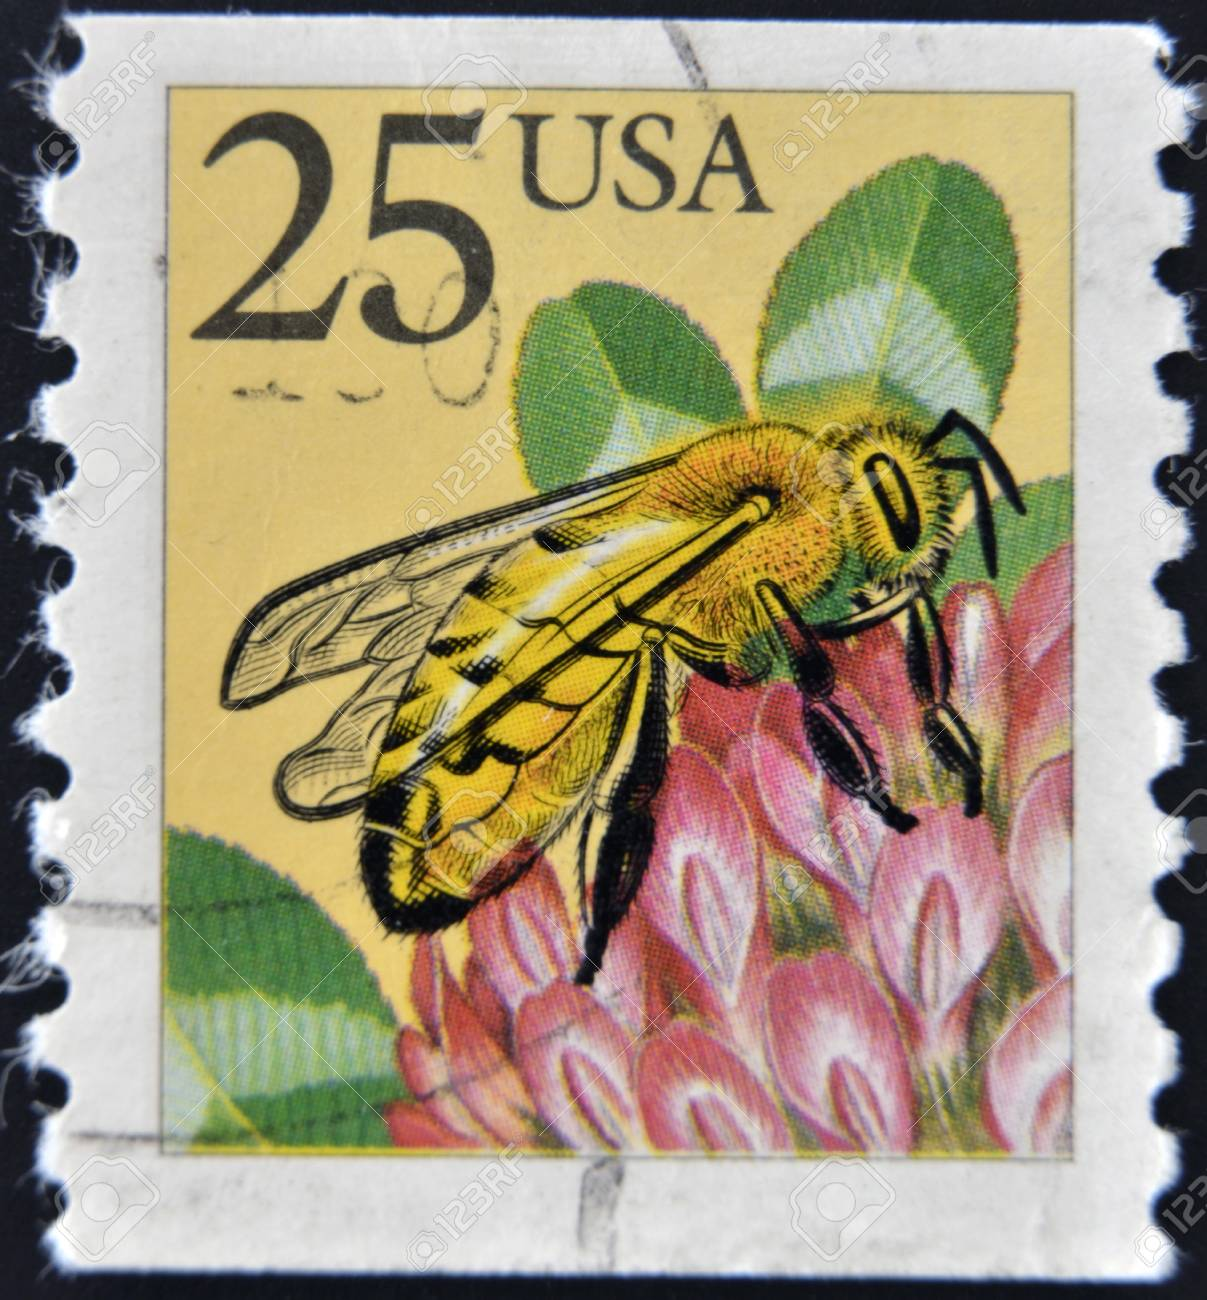 USA - CIRCA 1988: A stamp printed in the USA, shows the Western honey bee (Apis mellifera), circa 1988 Stock Photo - 12464759